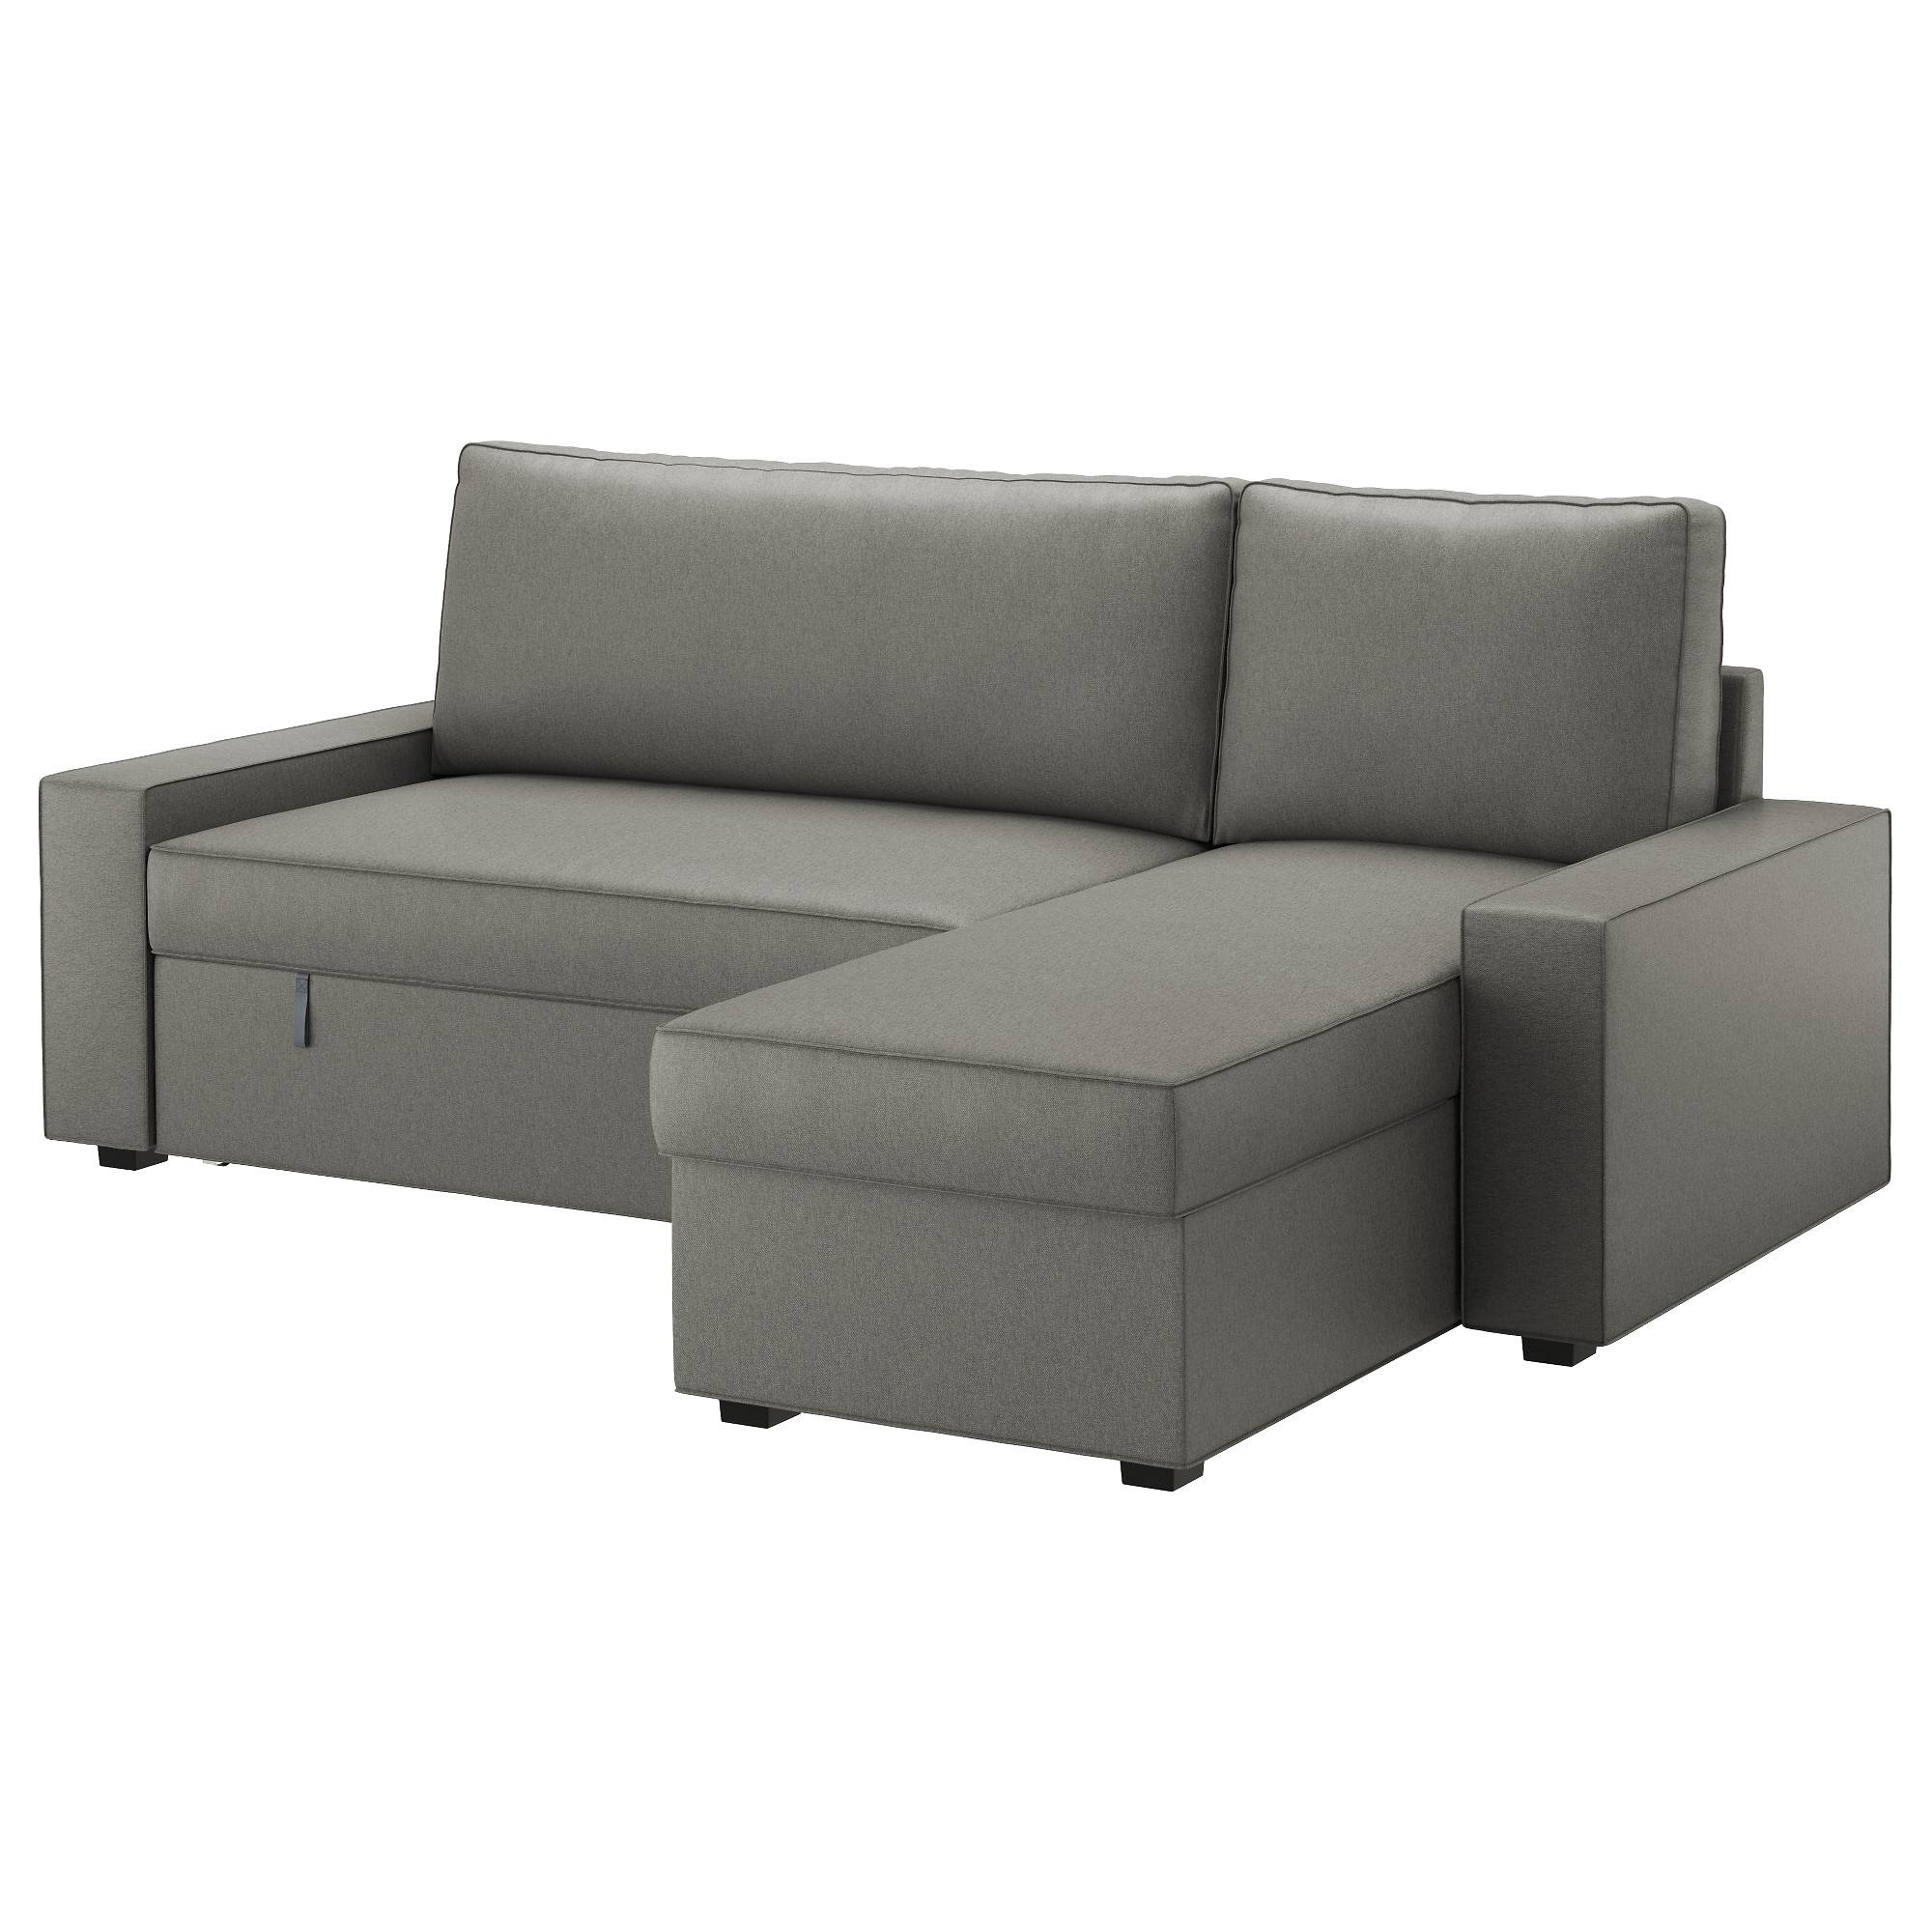 Vilasund Sofa Bed With Chaise Longue Borred Grey-Green - Ikea pertaining to Ikea Chaise Lounge Sofa (Image 30 of 30)